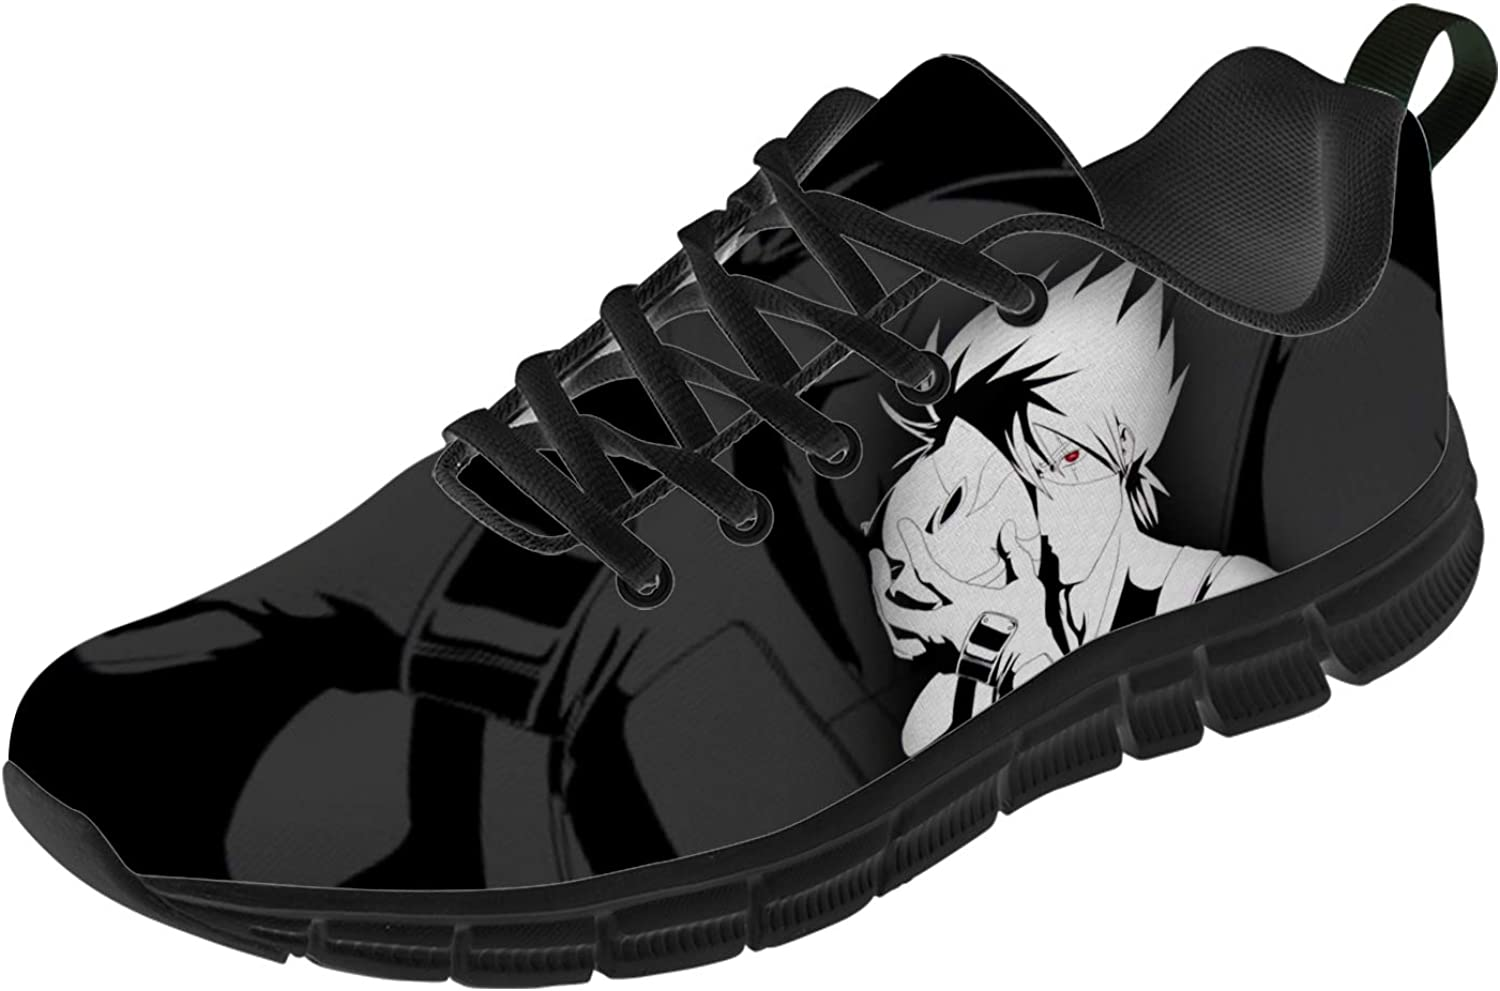 Japanese Anime OFFicial store Shoes for Men Walking Cosplay Custom Sneake Cash special price